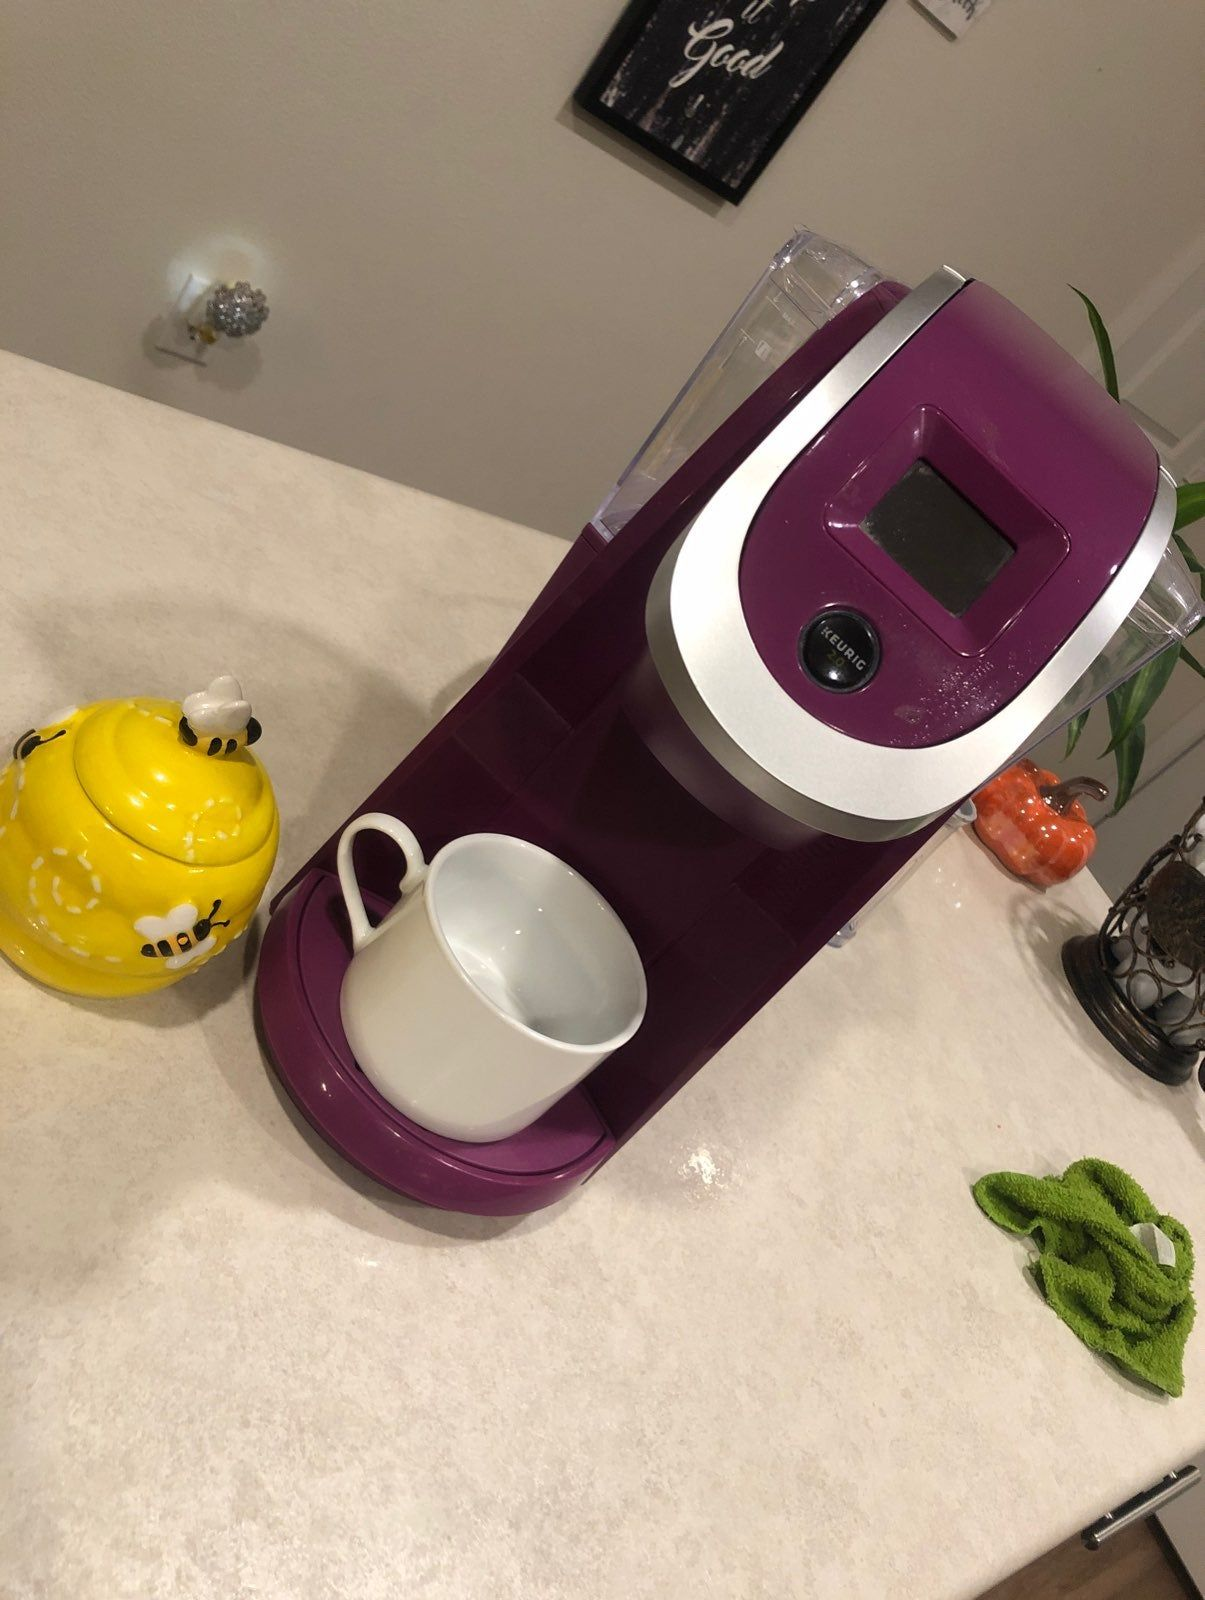 Keurig 2.0 coffee maker with replaceable filter and mini